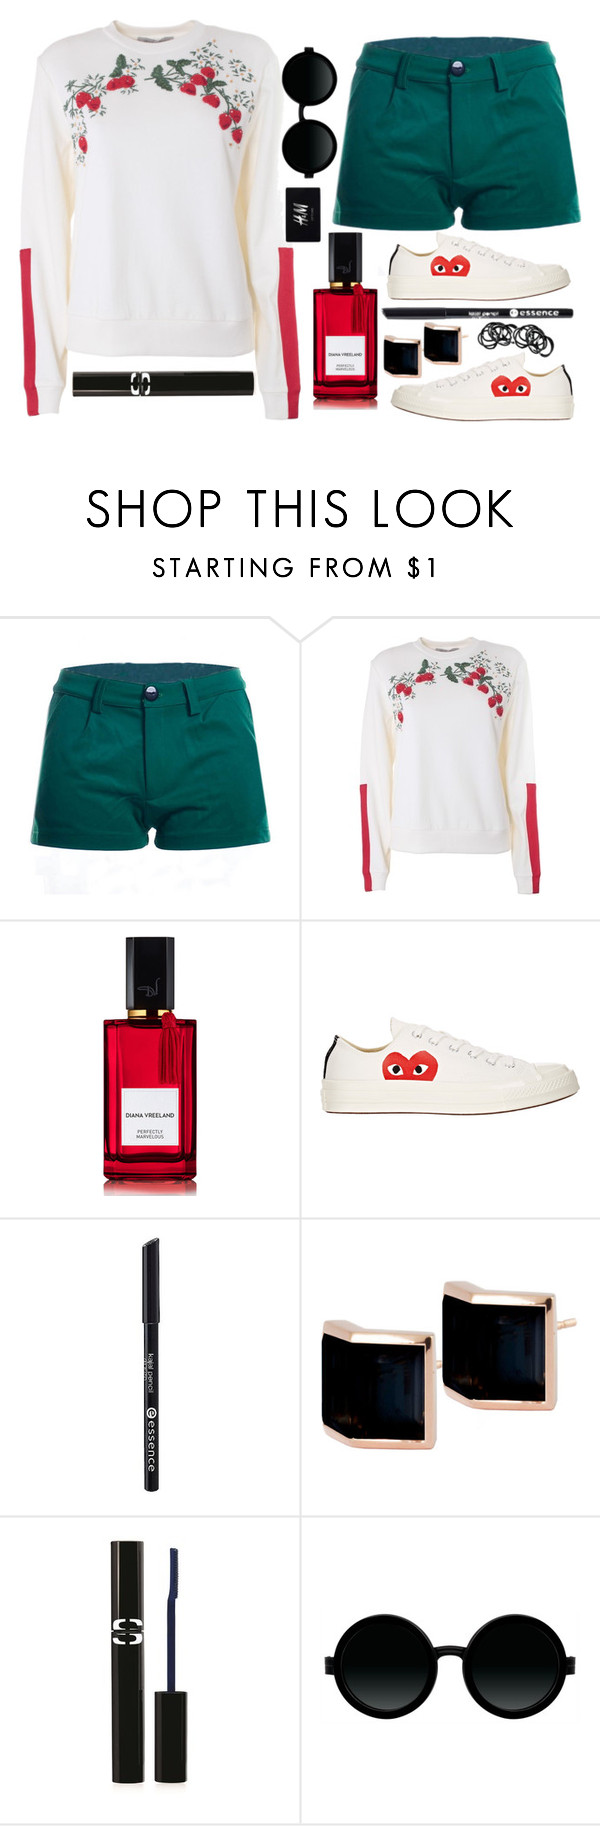 """Same colour scheme set ,xx"" by cusatta ❤ liked on Polyvore featuring Sportmax, Diana Vreeland Parfums, Comme des Garçons, Essence, Kattri, Sisley, Moscot and H&M"